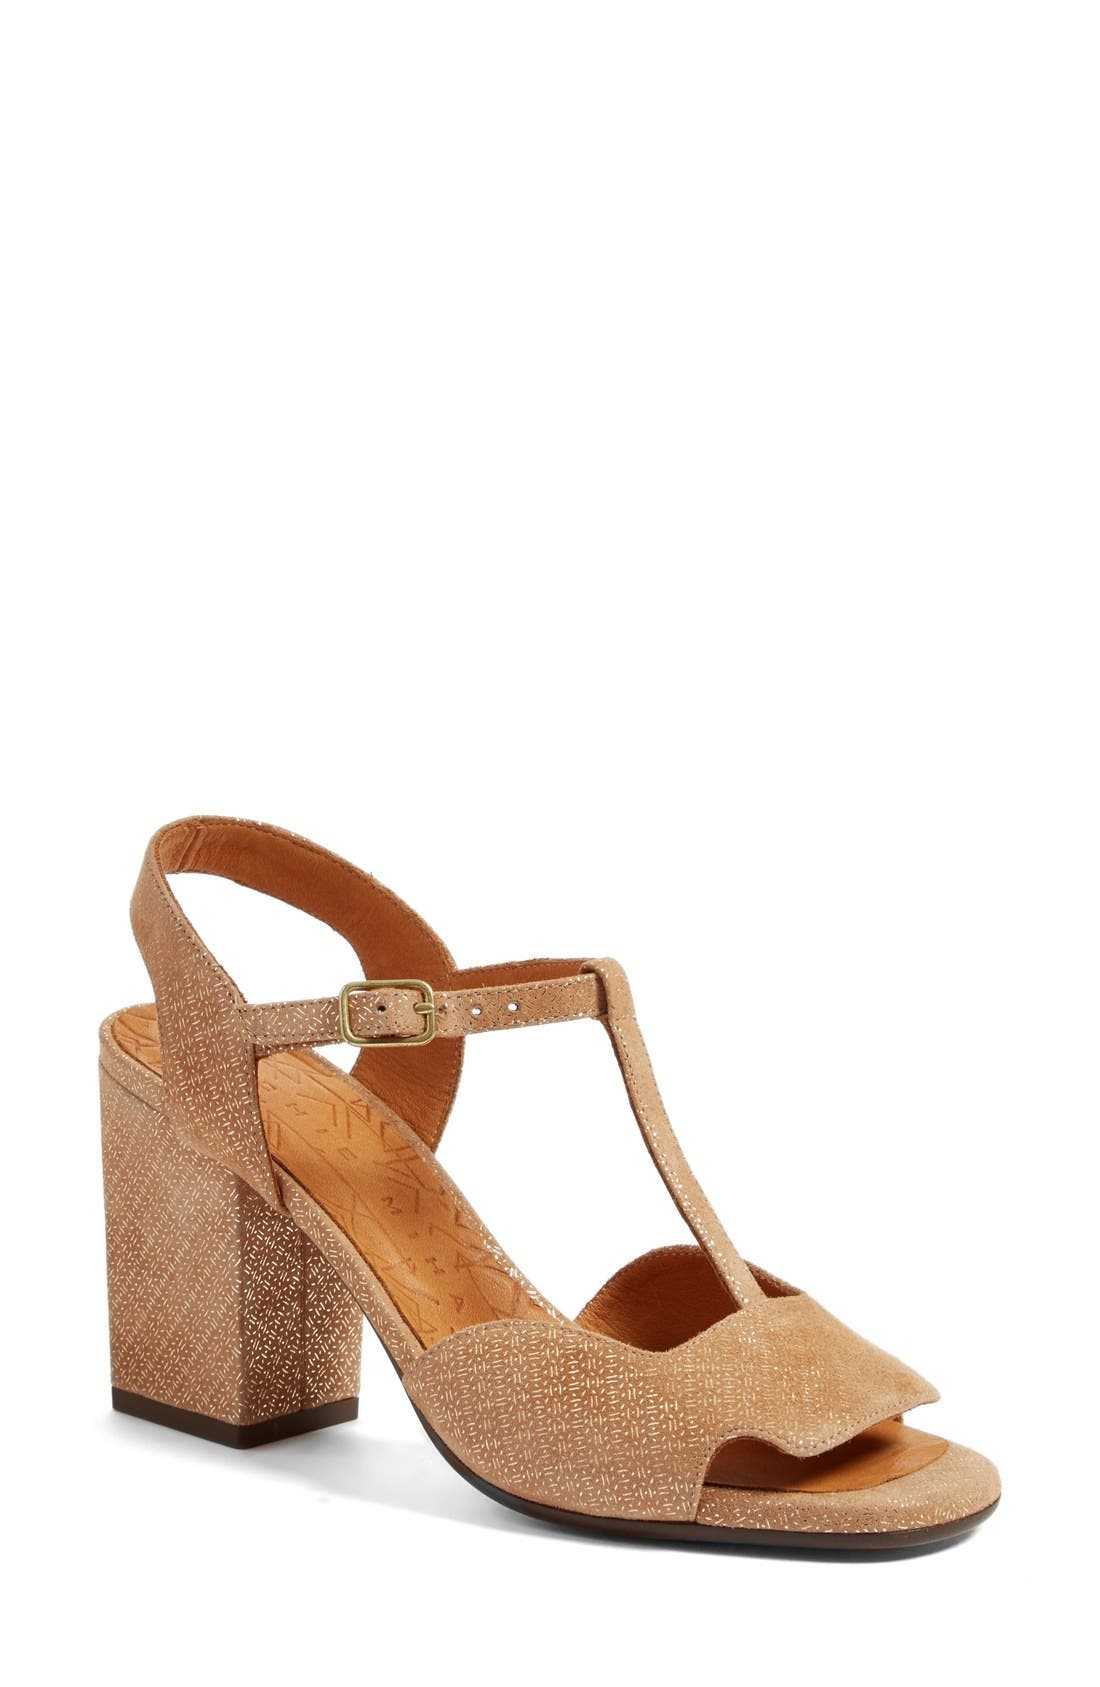 Birthe T-Strap Sandal,                             Main thumbnail 1, color,